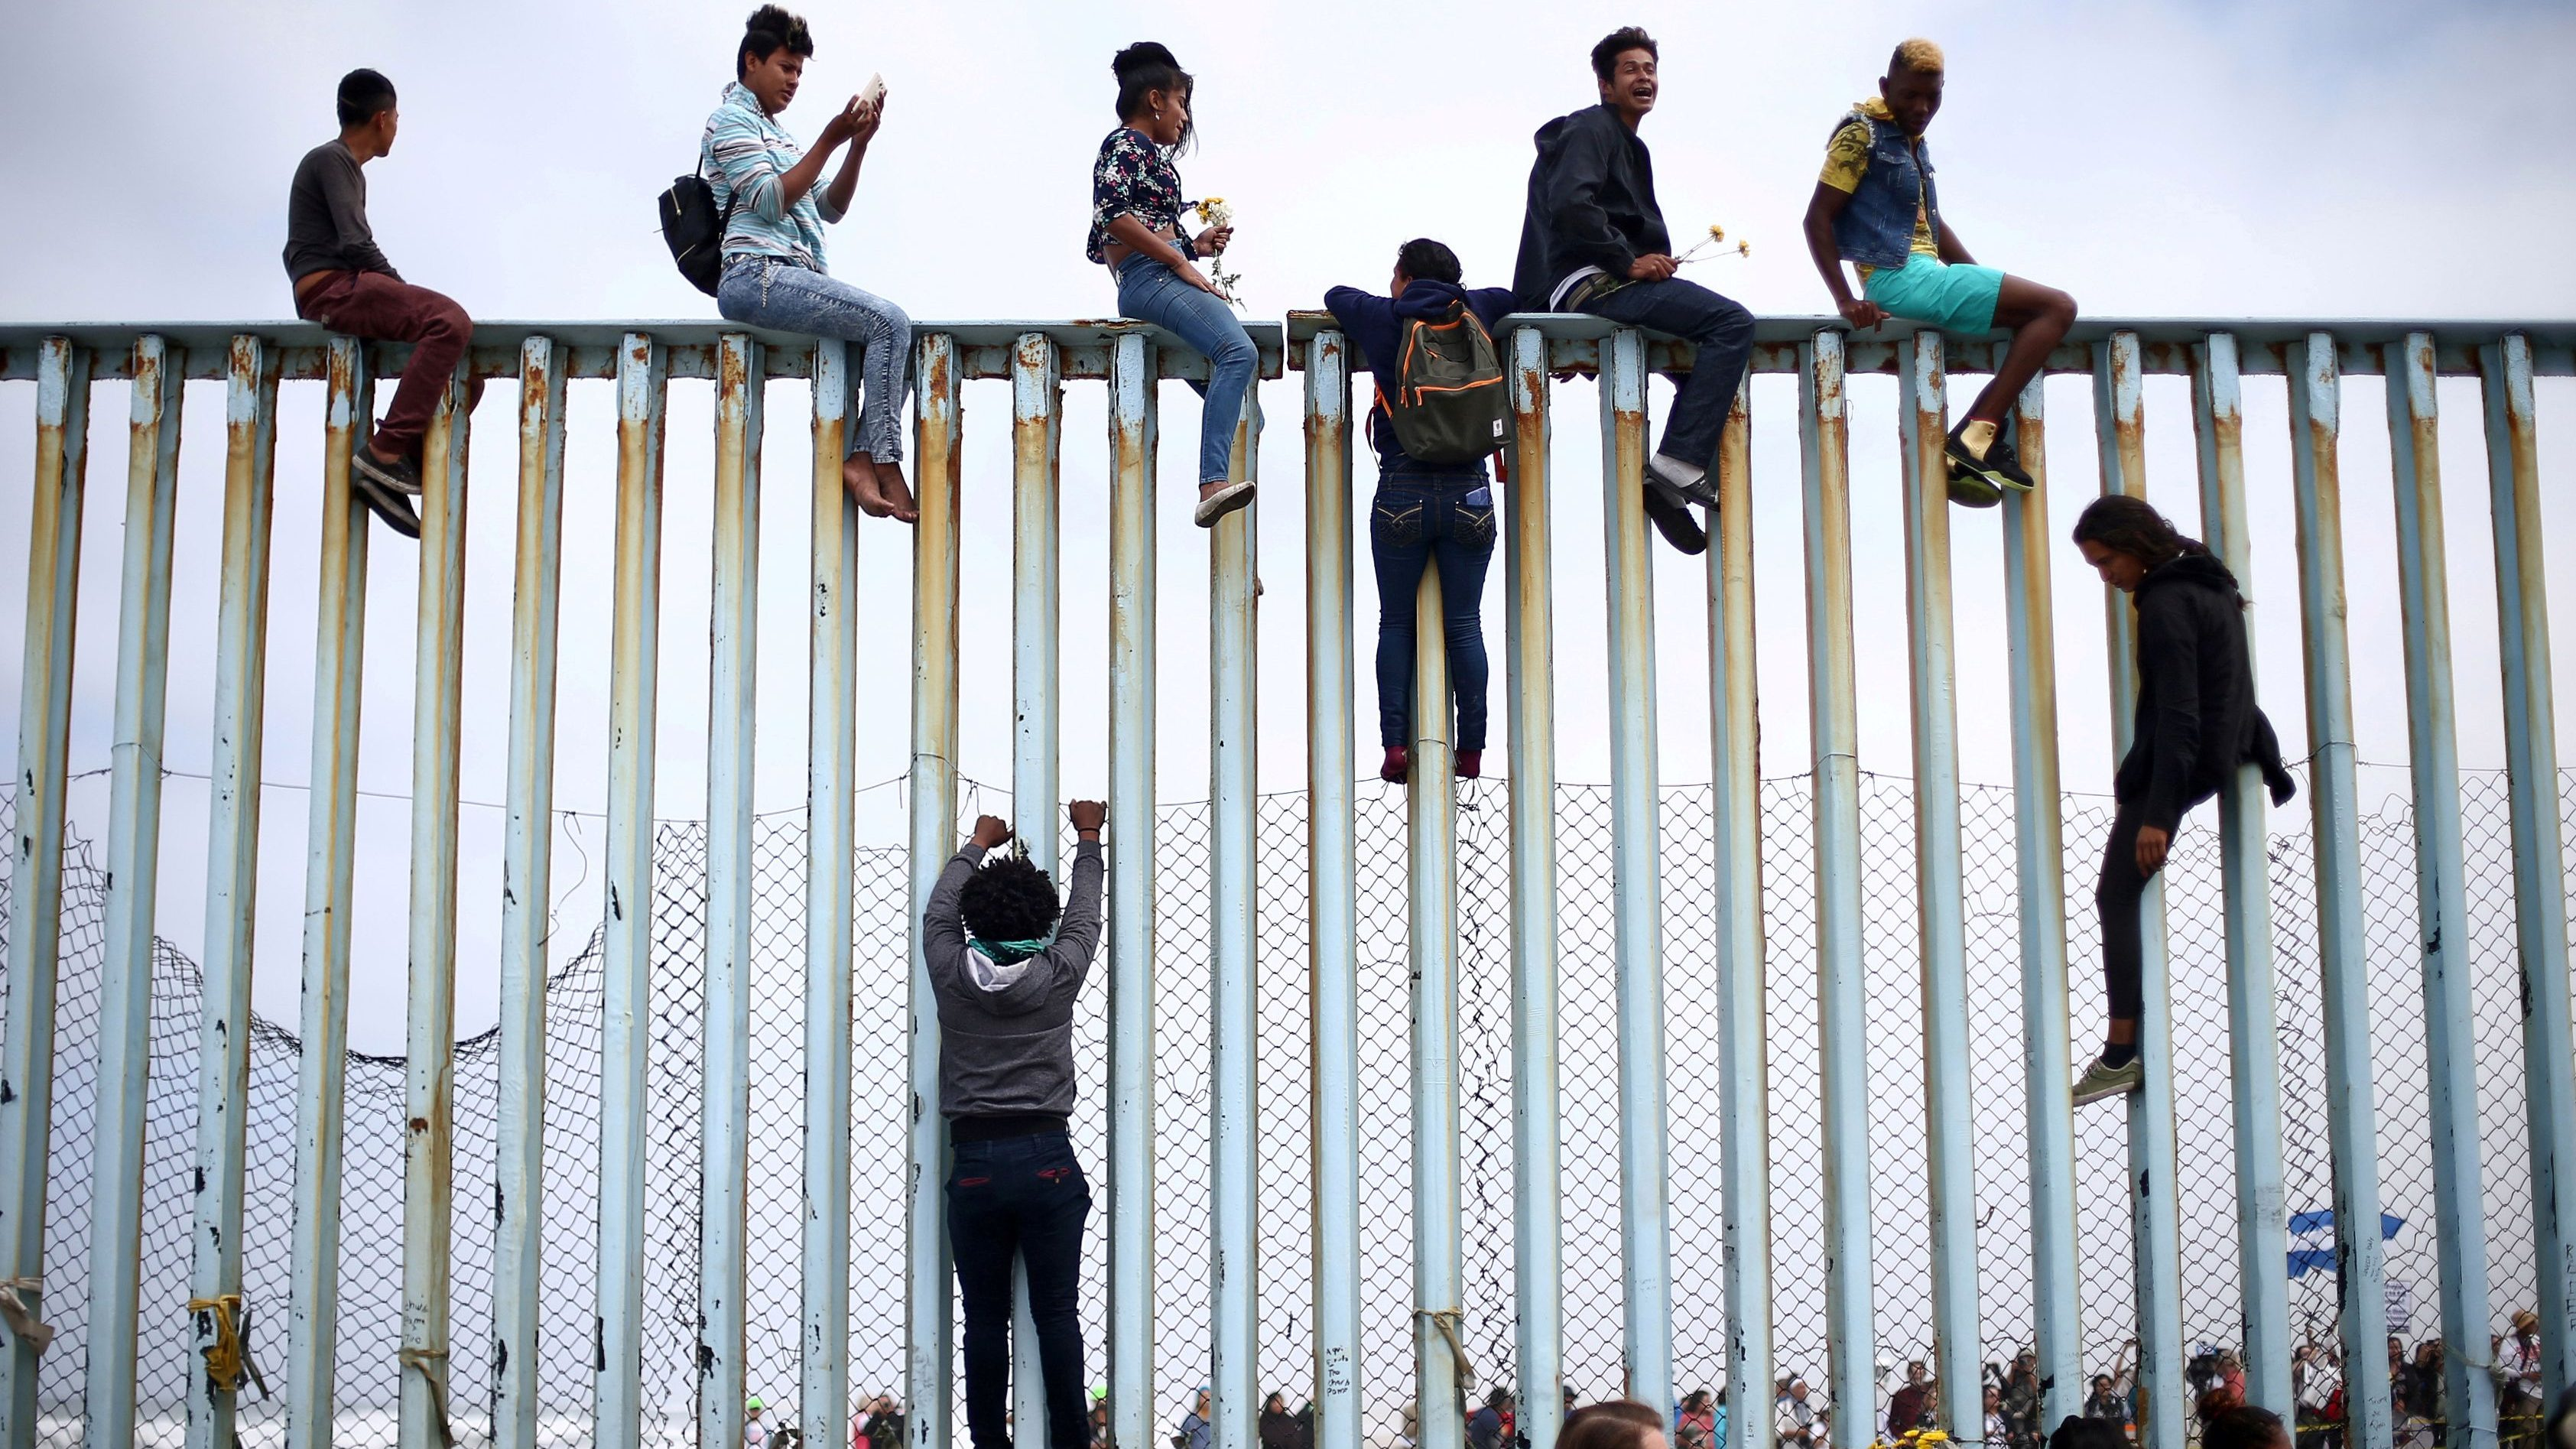 Members of a caravan of migrants from Central America climb up the border fence between Mexico and the U.S., as a part of a demonstration prior to preparations for an asylum request in the US